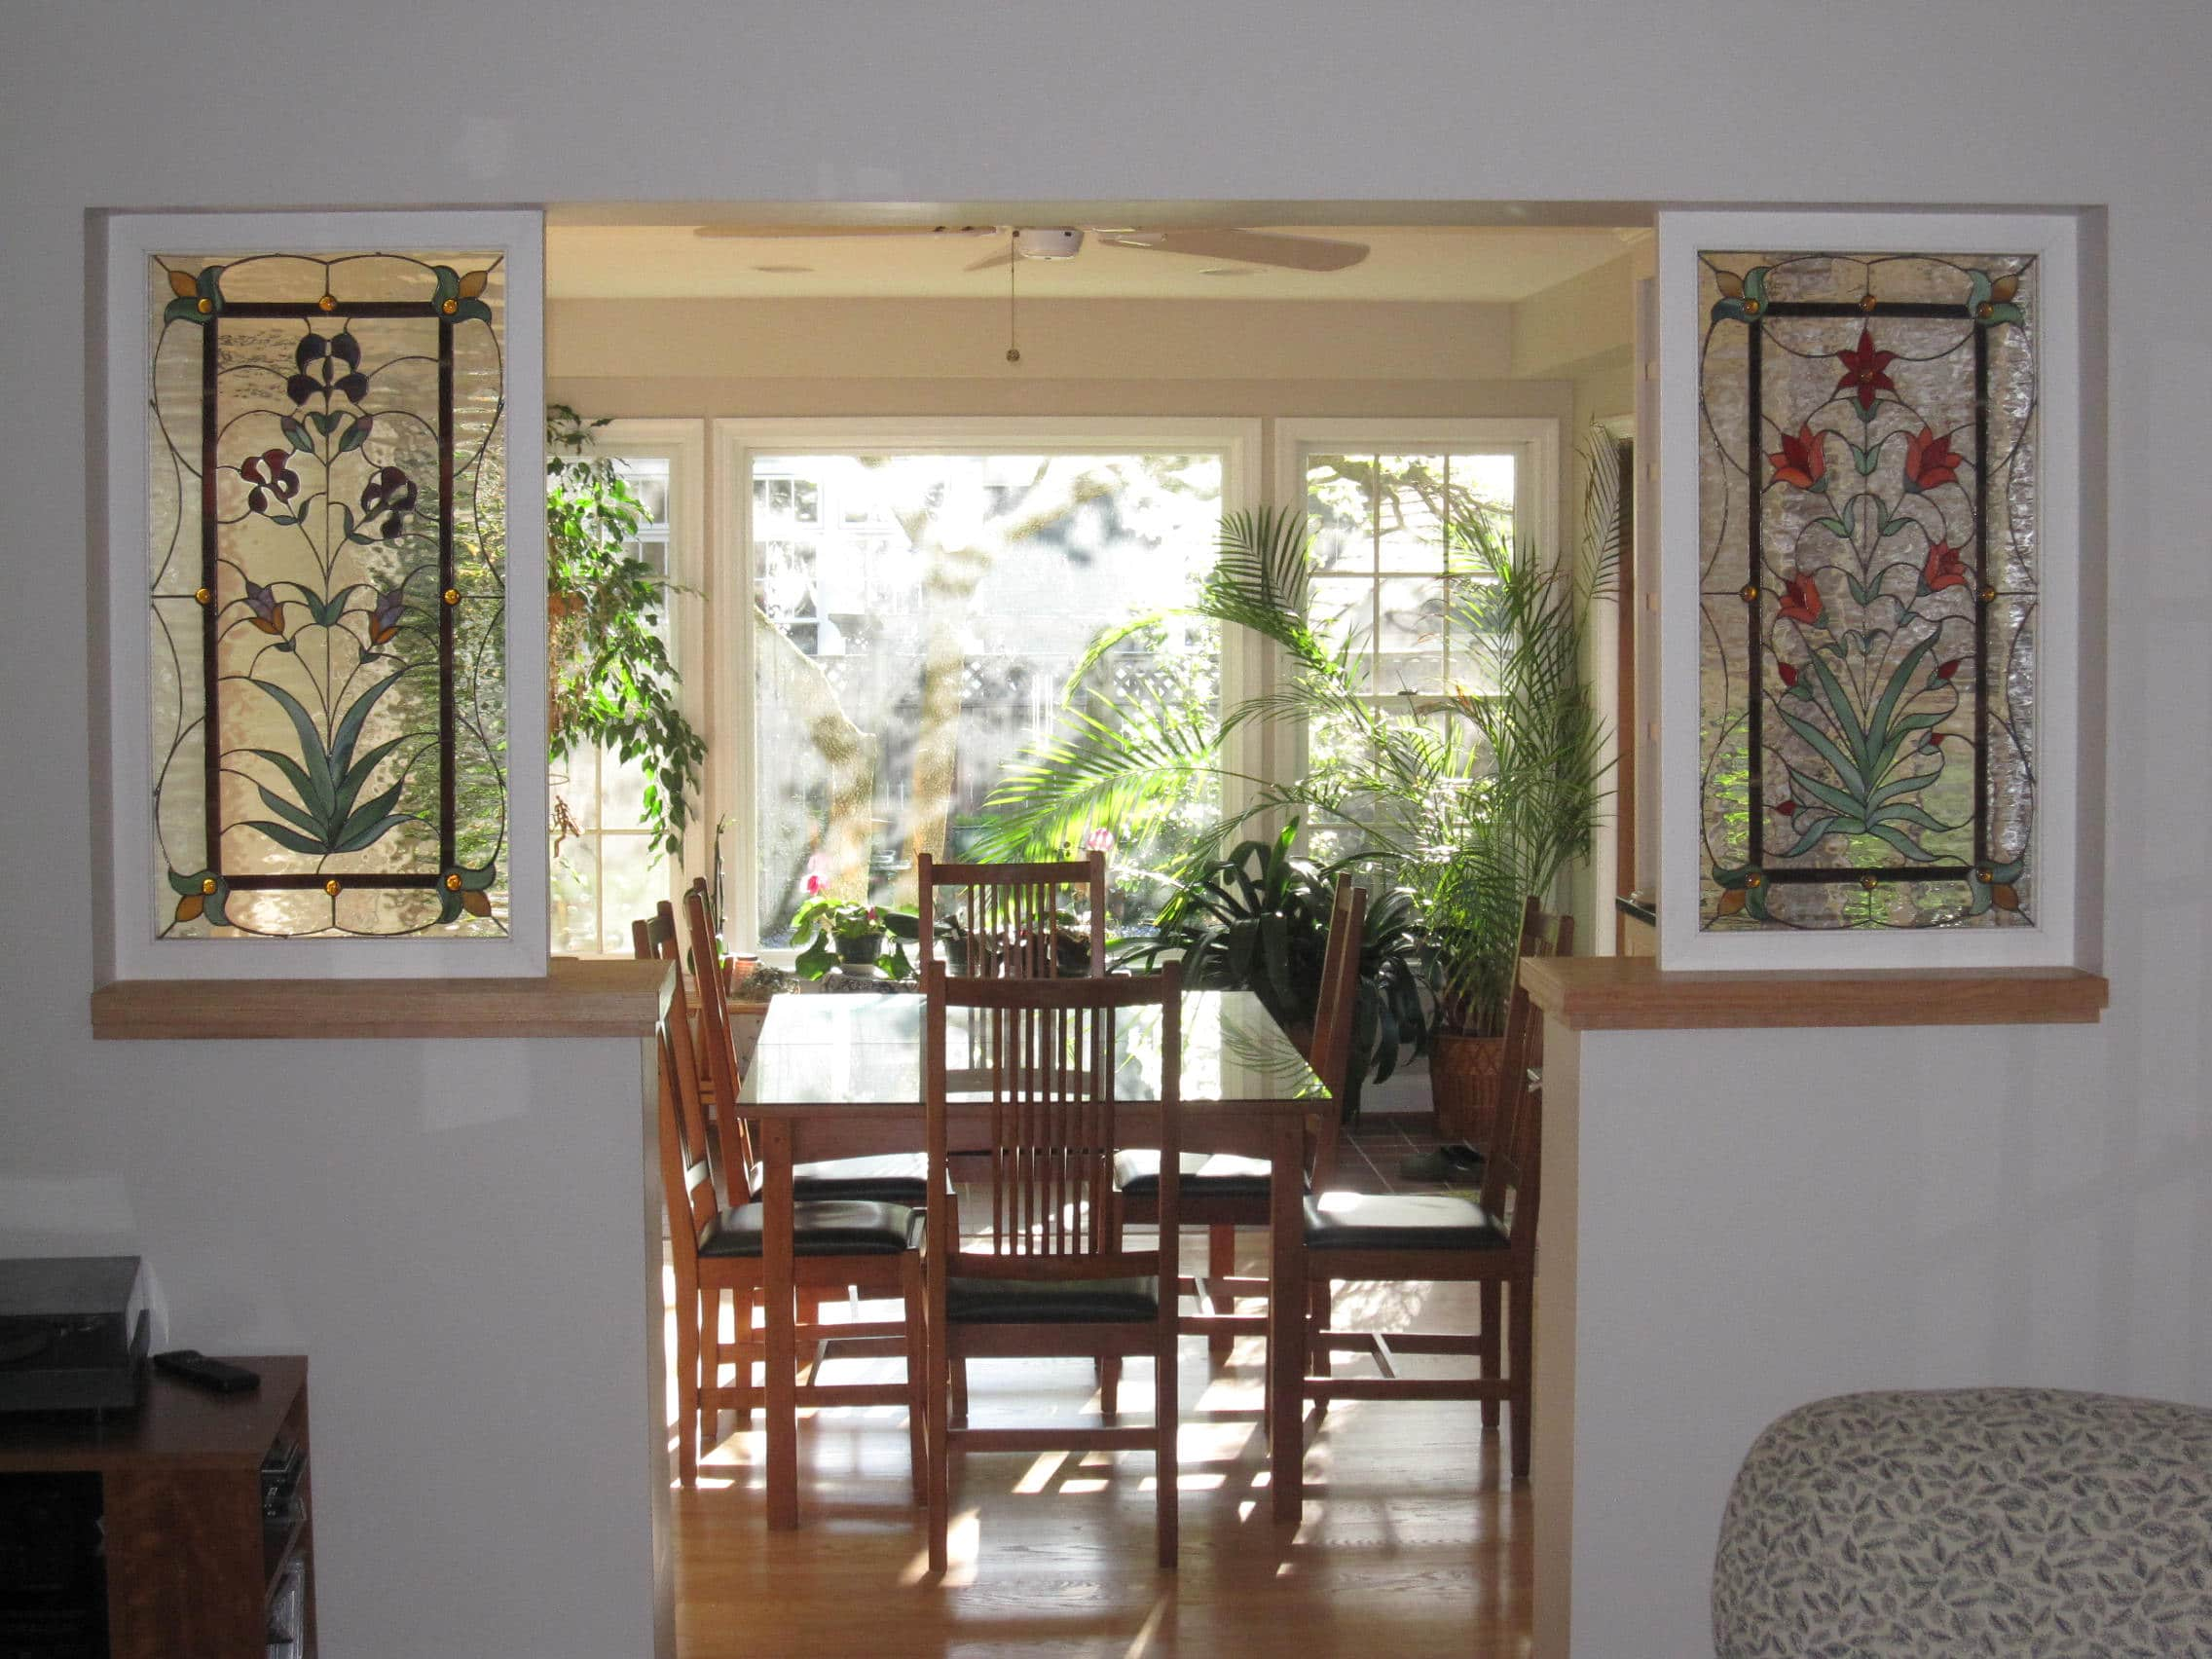 Stained Glass Interior Room Dividers  Stainedglasswindowscom. Replacing Kitchen Cabinet Fronts. Portable Kitchen Cabinets. Kitchen Cabinet Locks Baby. Kitchen Cabinet Pull Out Storage. Kitchen Cabinets Doors Home Depot. Kitchen Cabinet Handles Uk. Kitchen Cabinets Kraftmaid. Kitchens With Cream Colored Cabinets